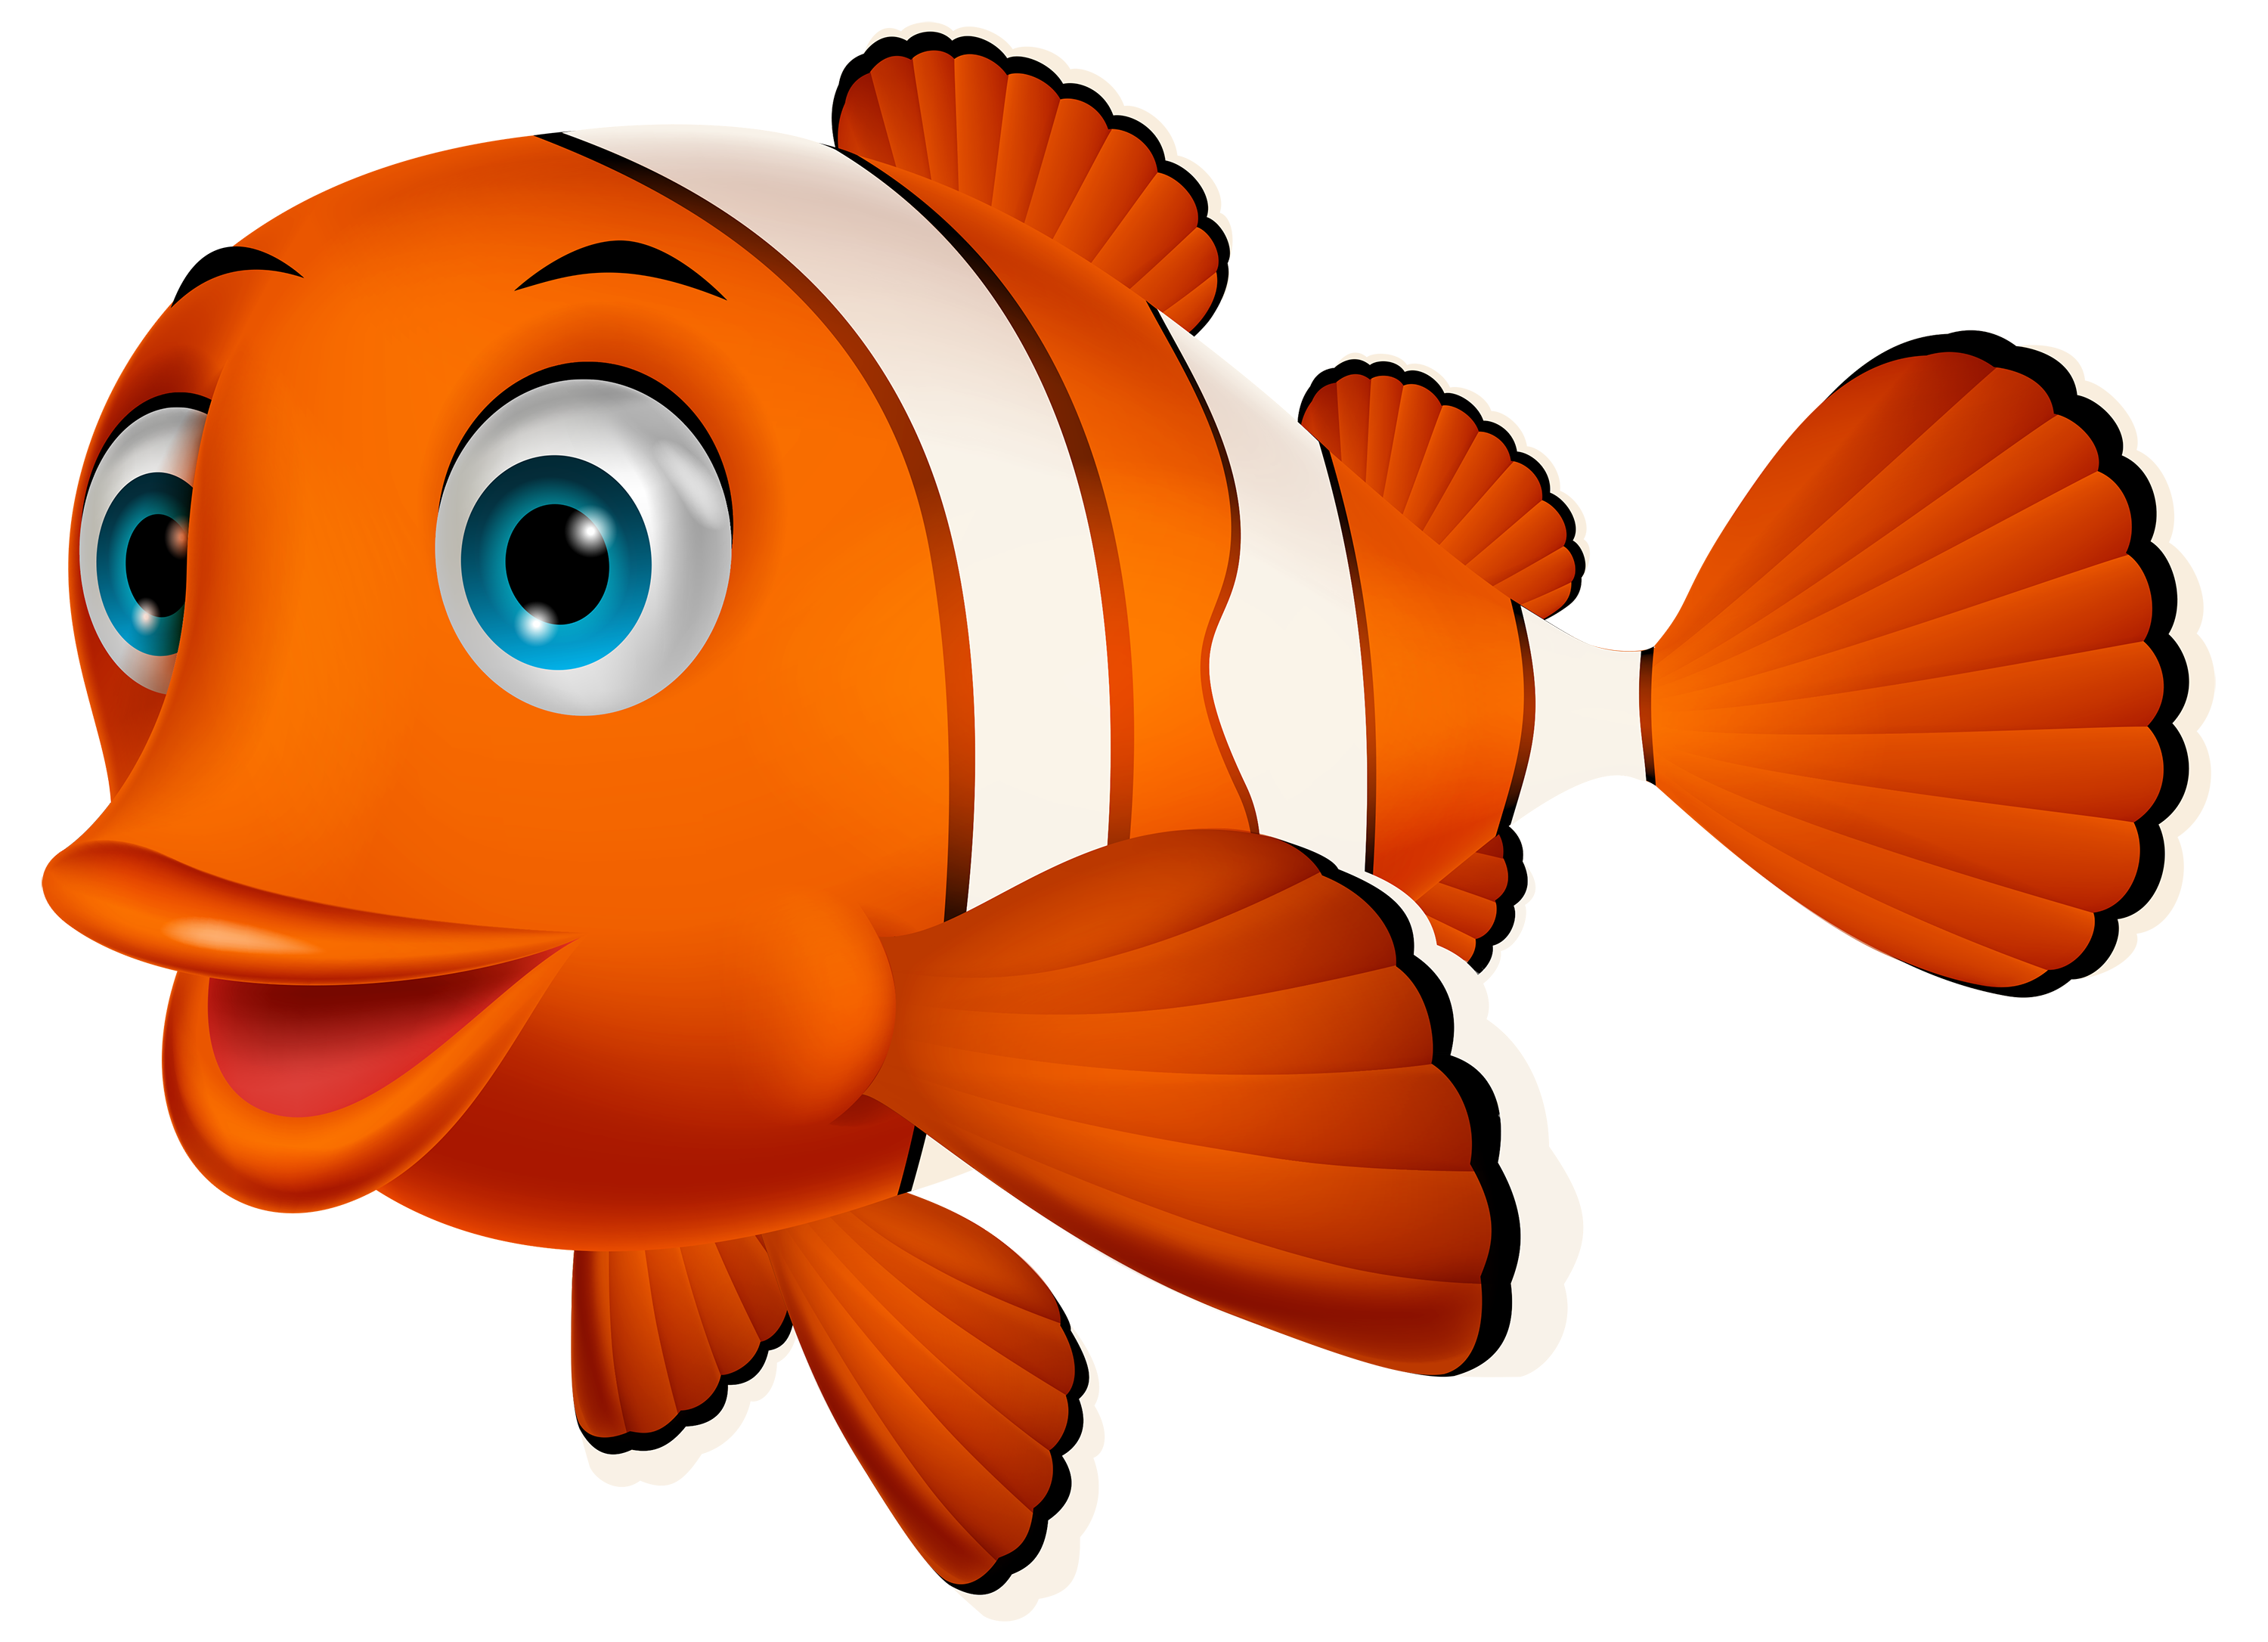 Fun fish clipart image free library Interesting Fish Images Free Clip Art Jumping Bass Clipart Panda #20358 image free library